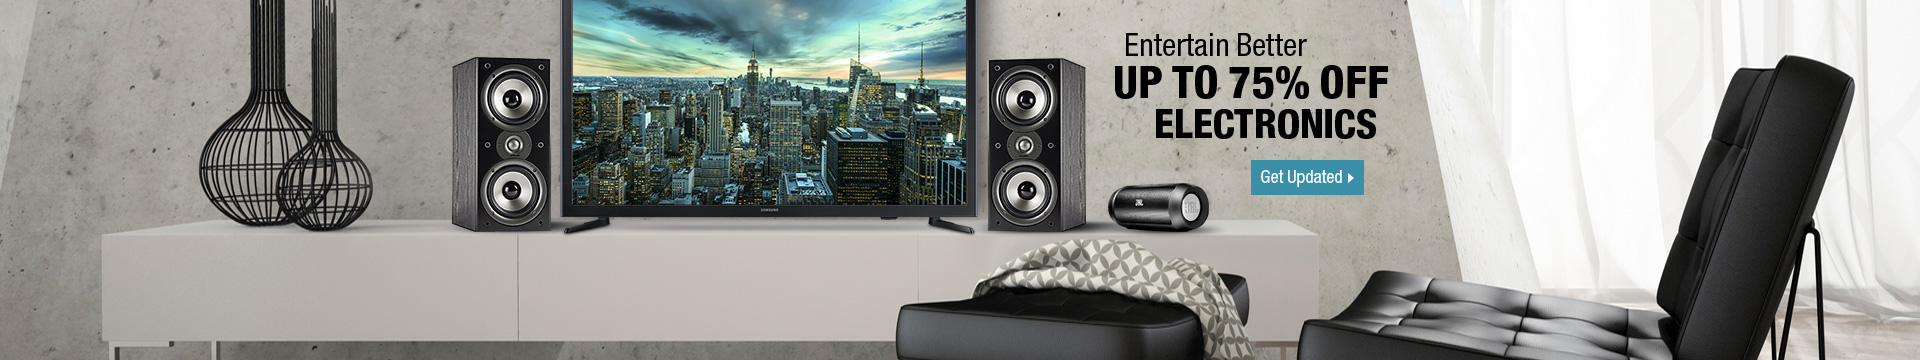 Week-Long Markdowns - Entertain Better Up to 75% off Electronics